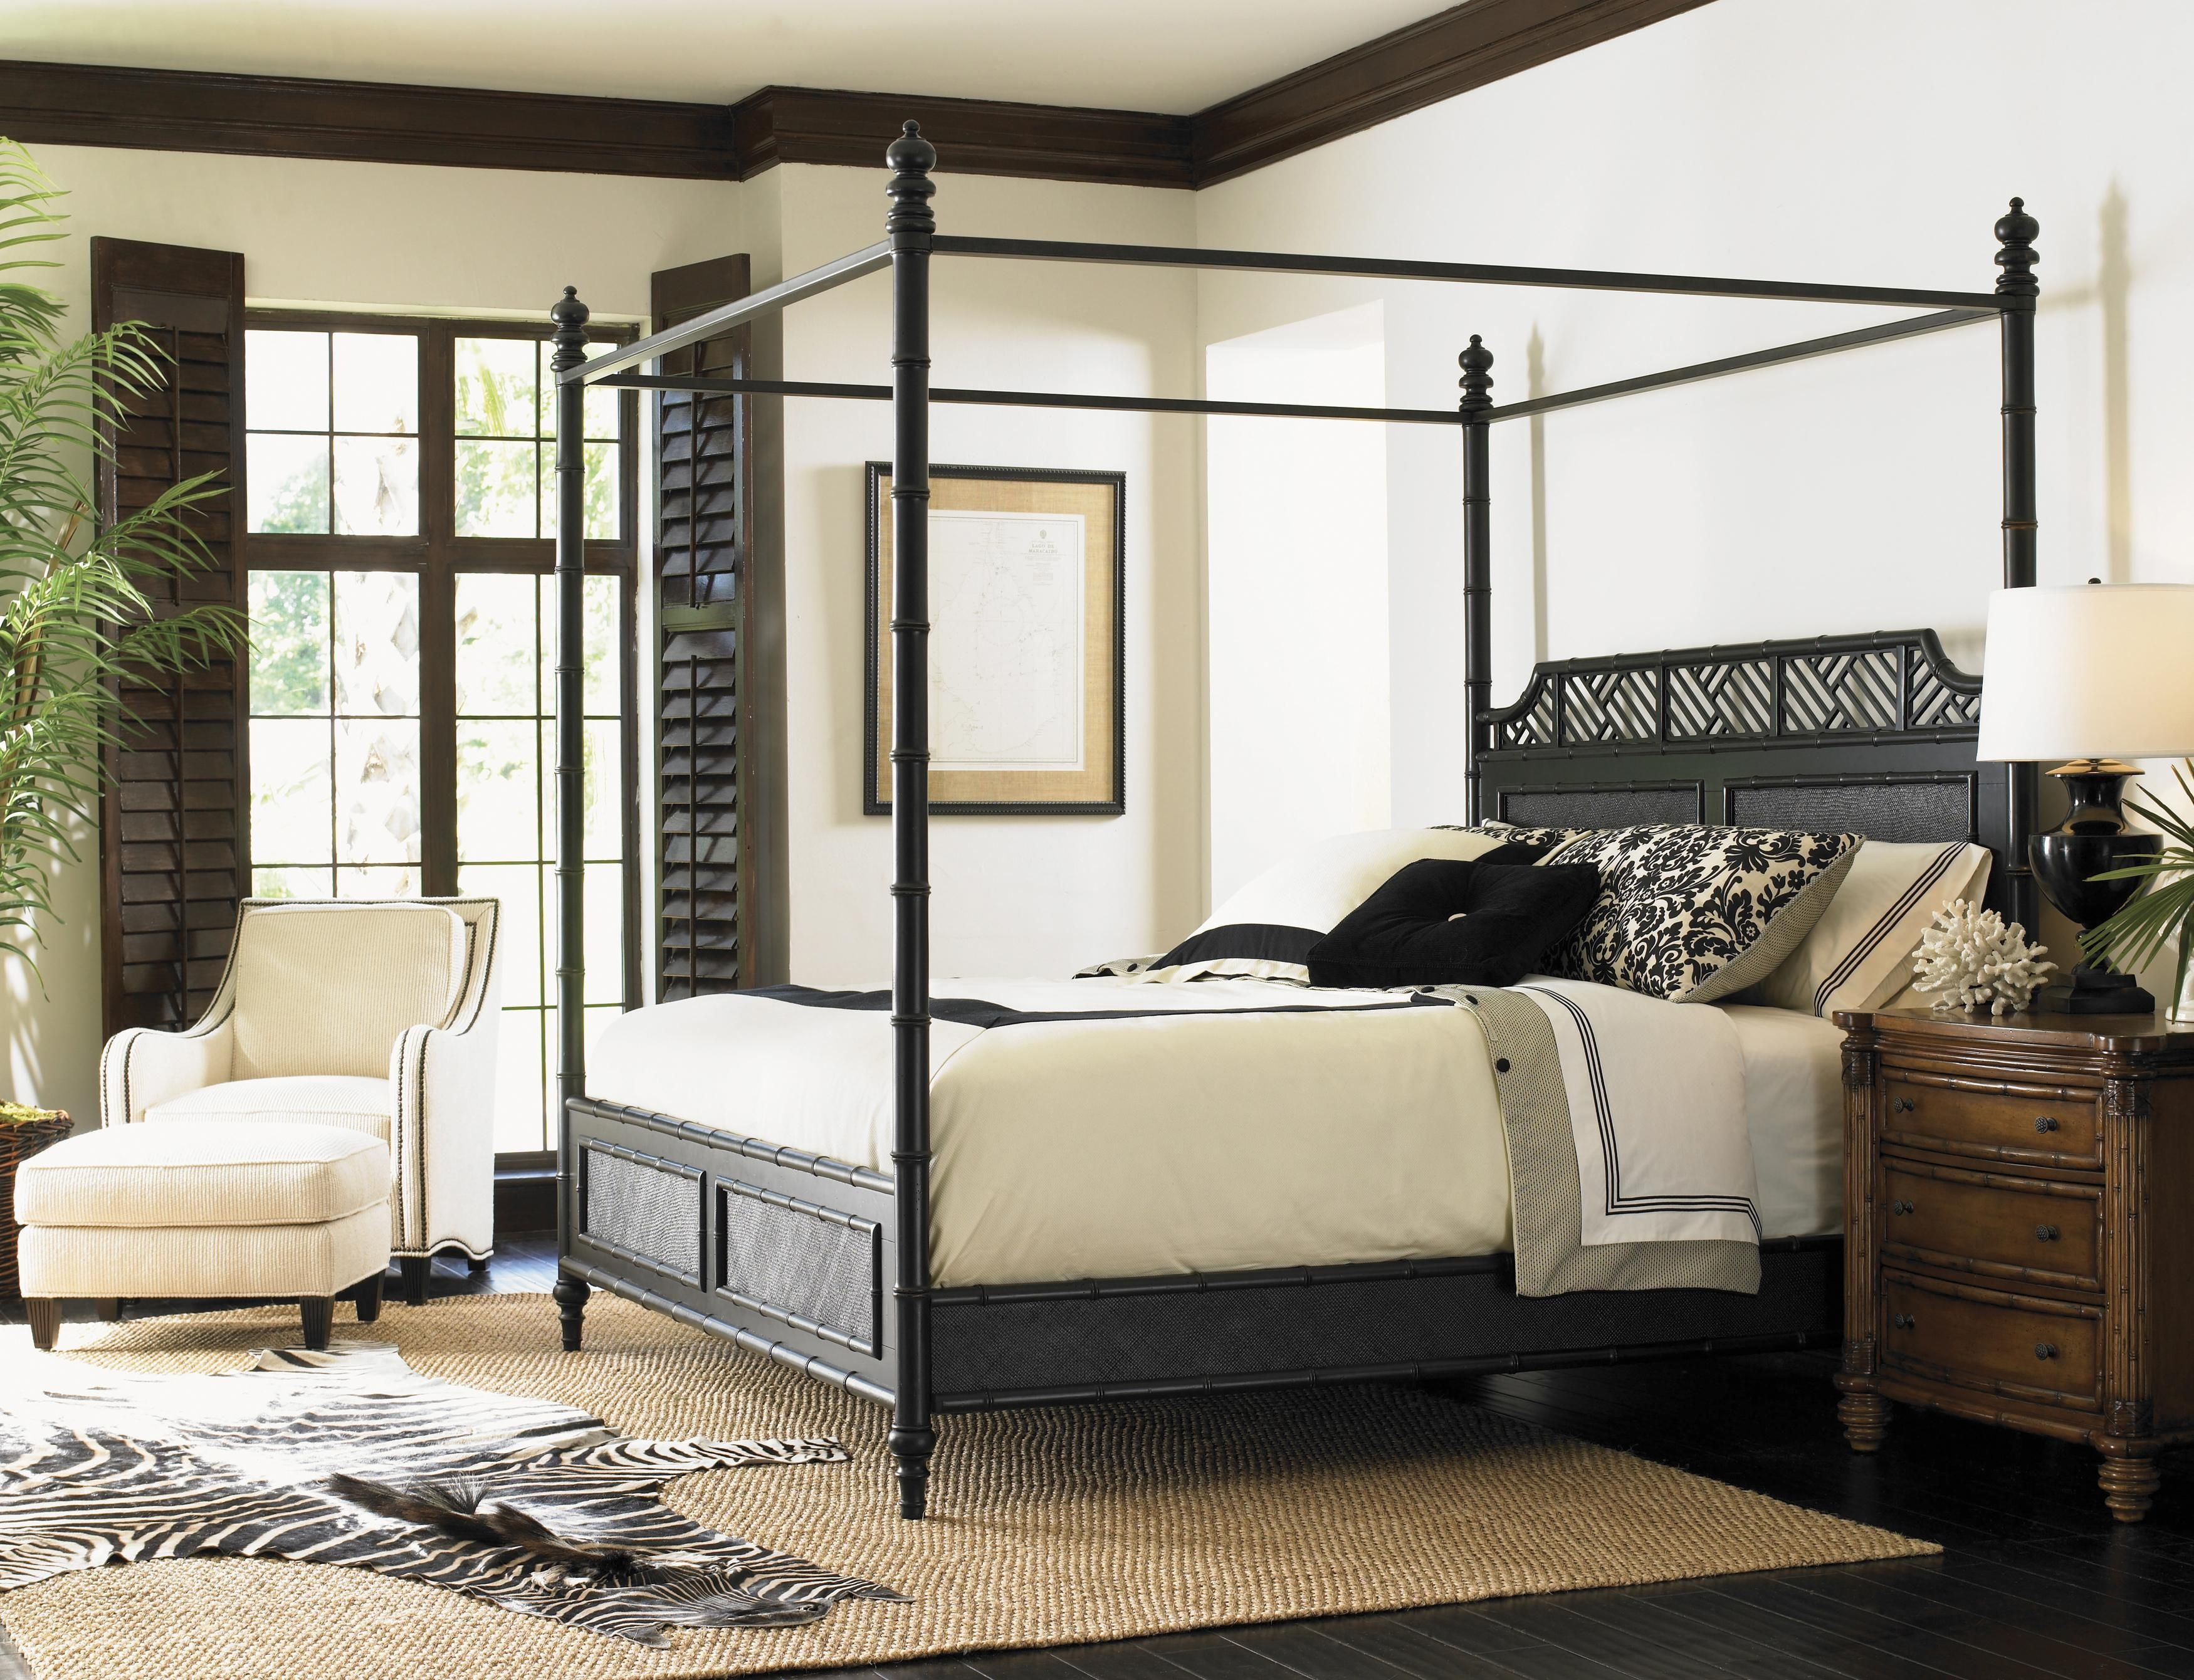 West Indies Canopy Bed Transform your bedroom into a